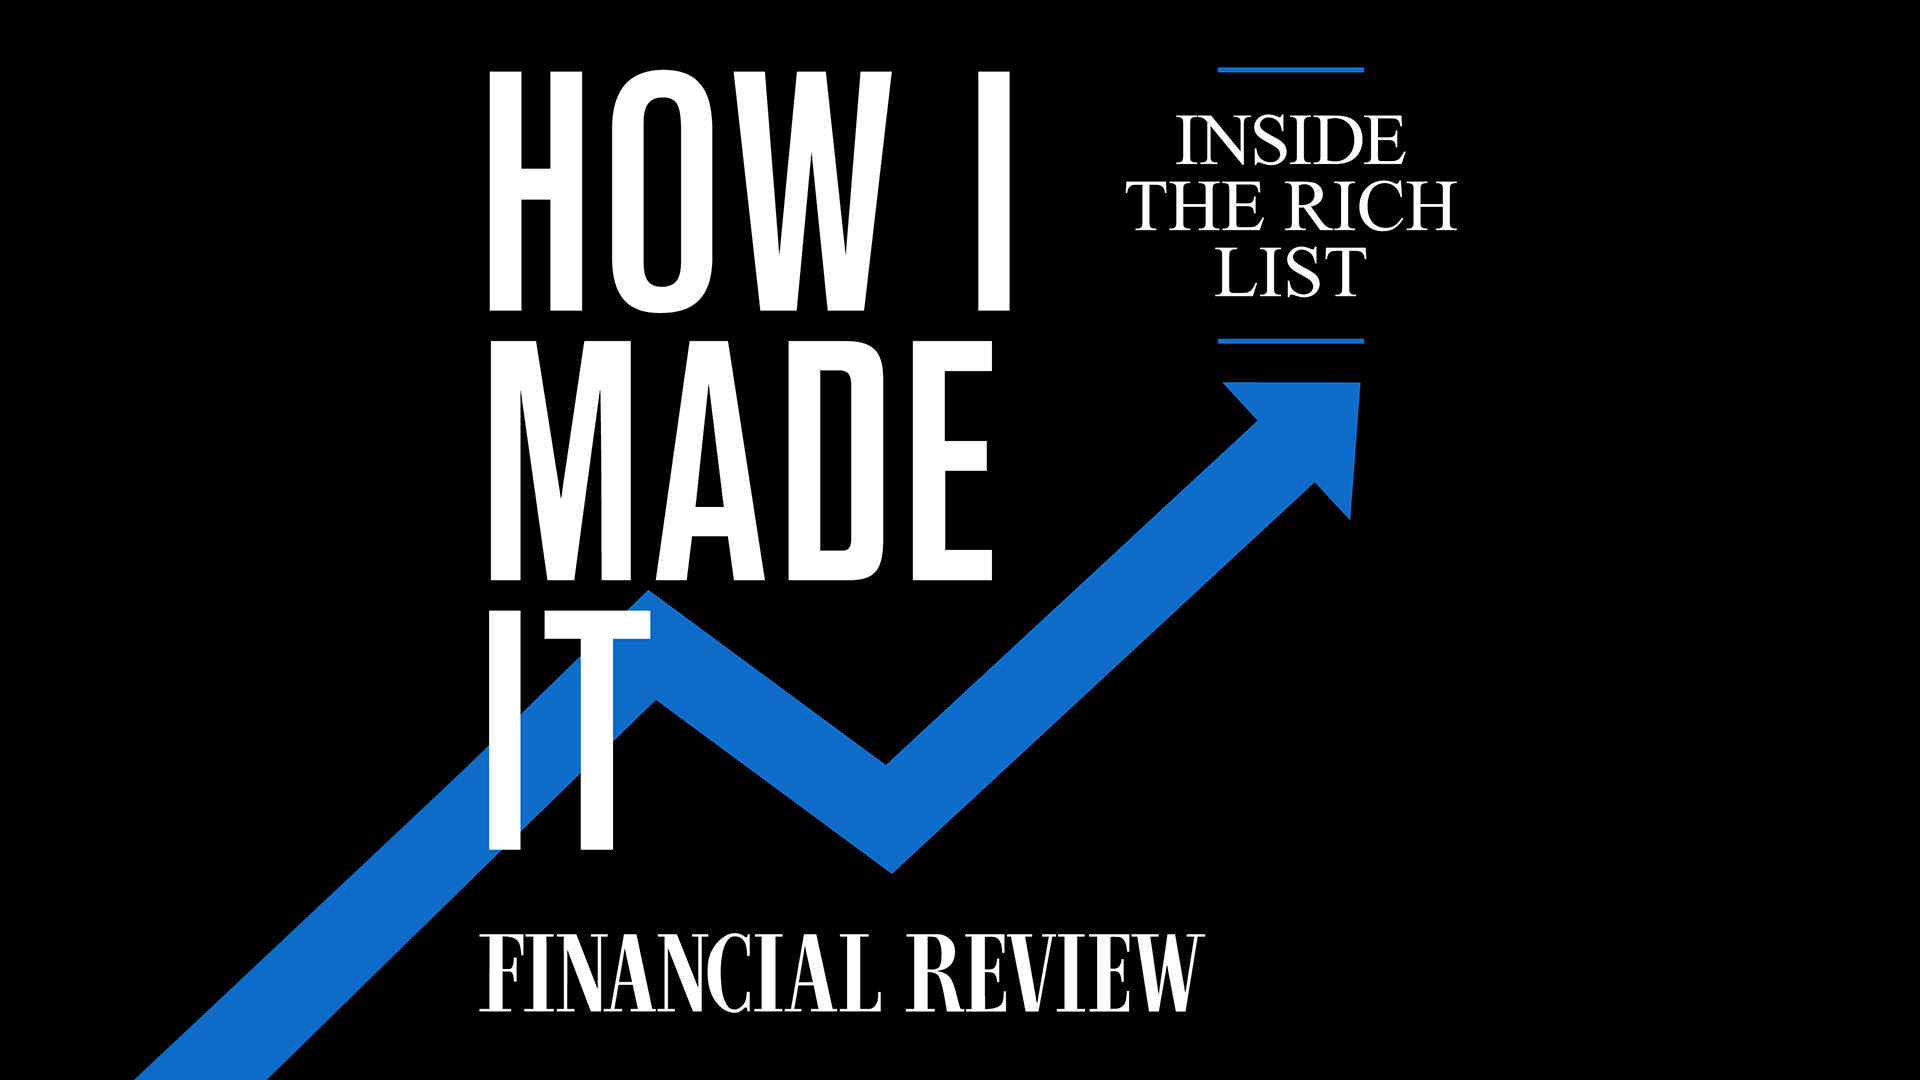 Rich Listers reveal how they build their wealth in new podcast series by the Australian Financial Review